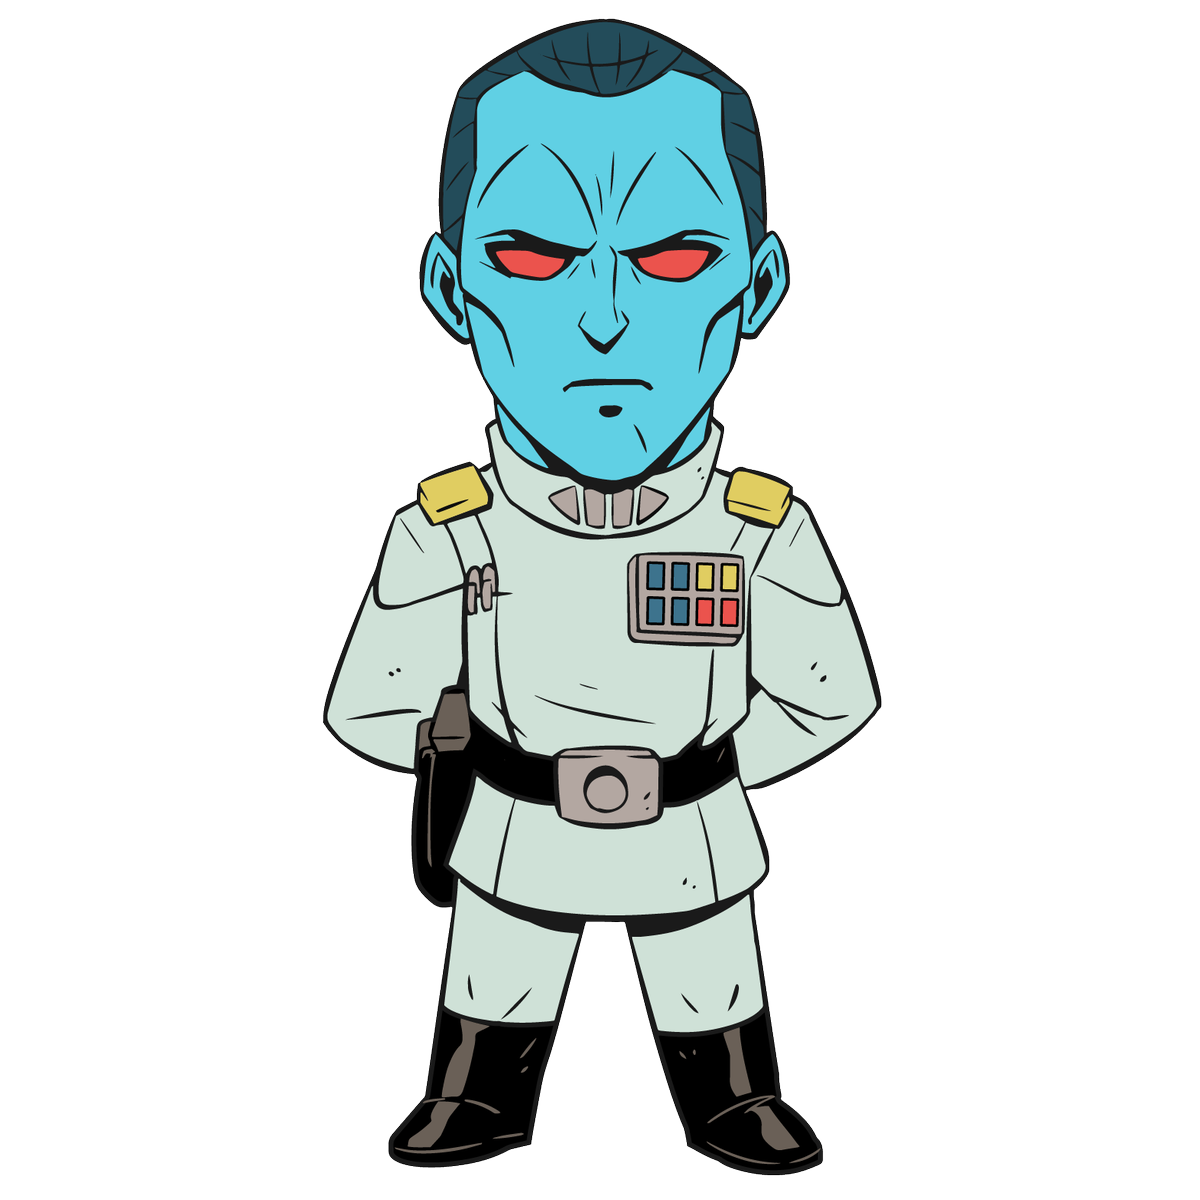 Starwars clipart rey. Star wars books on